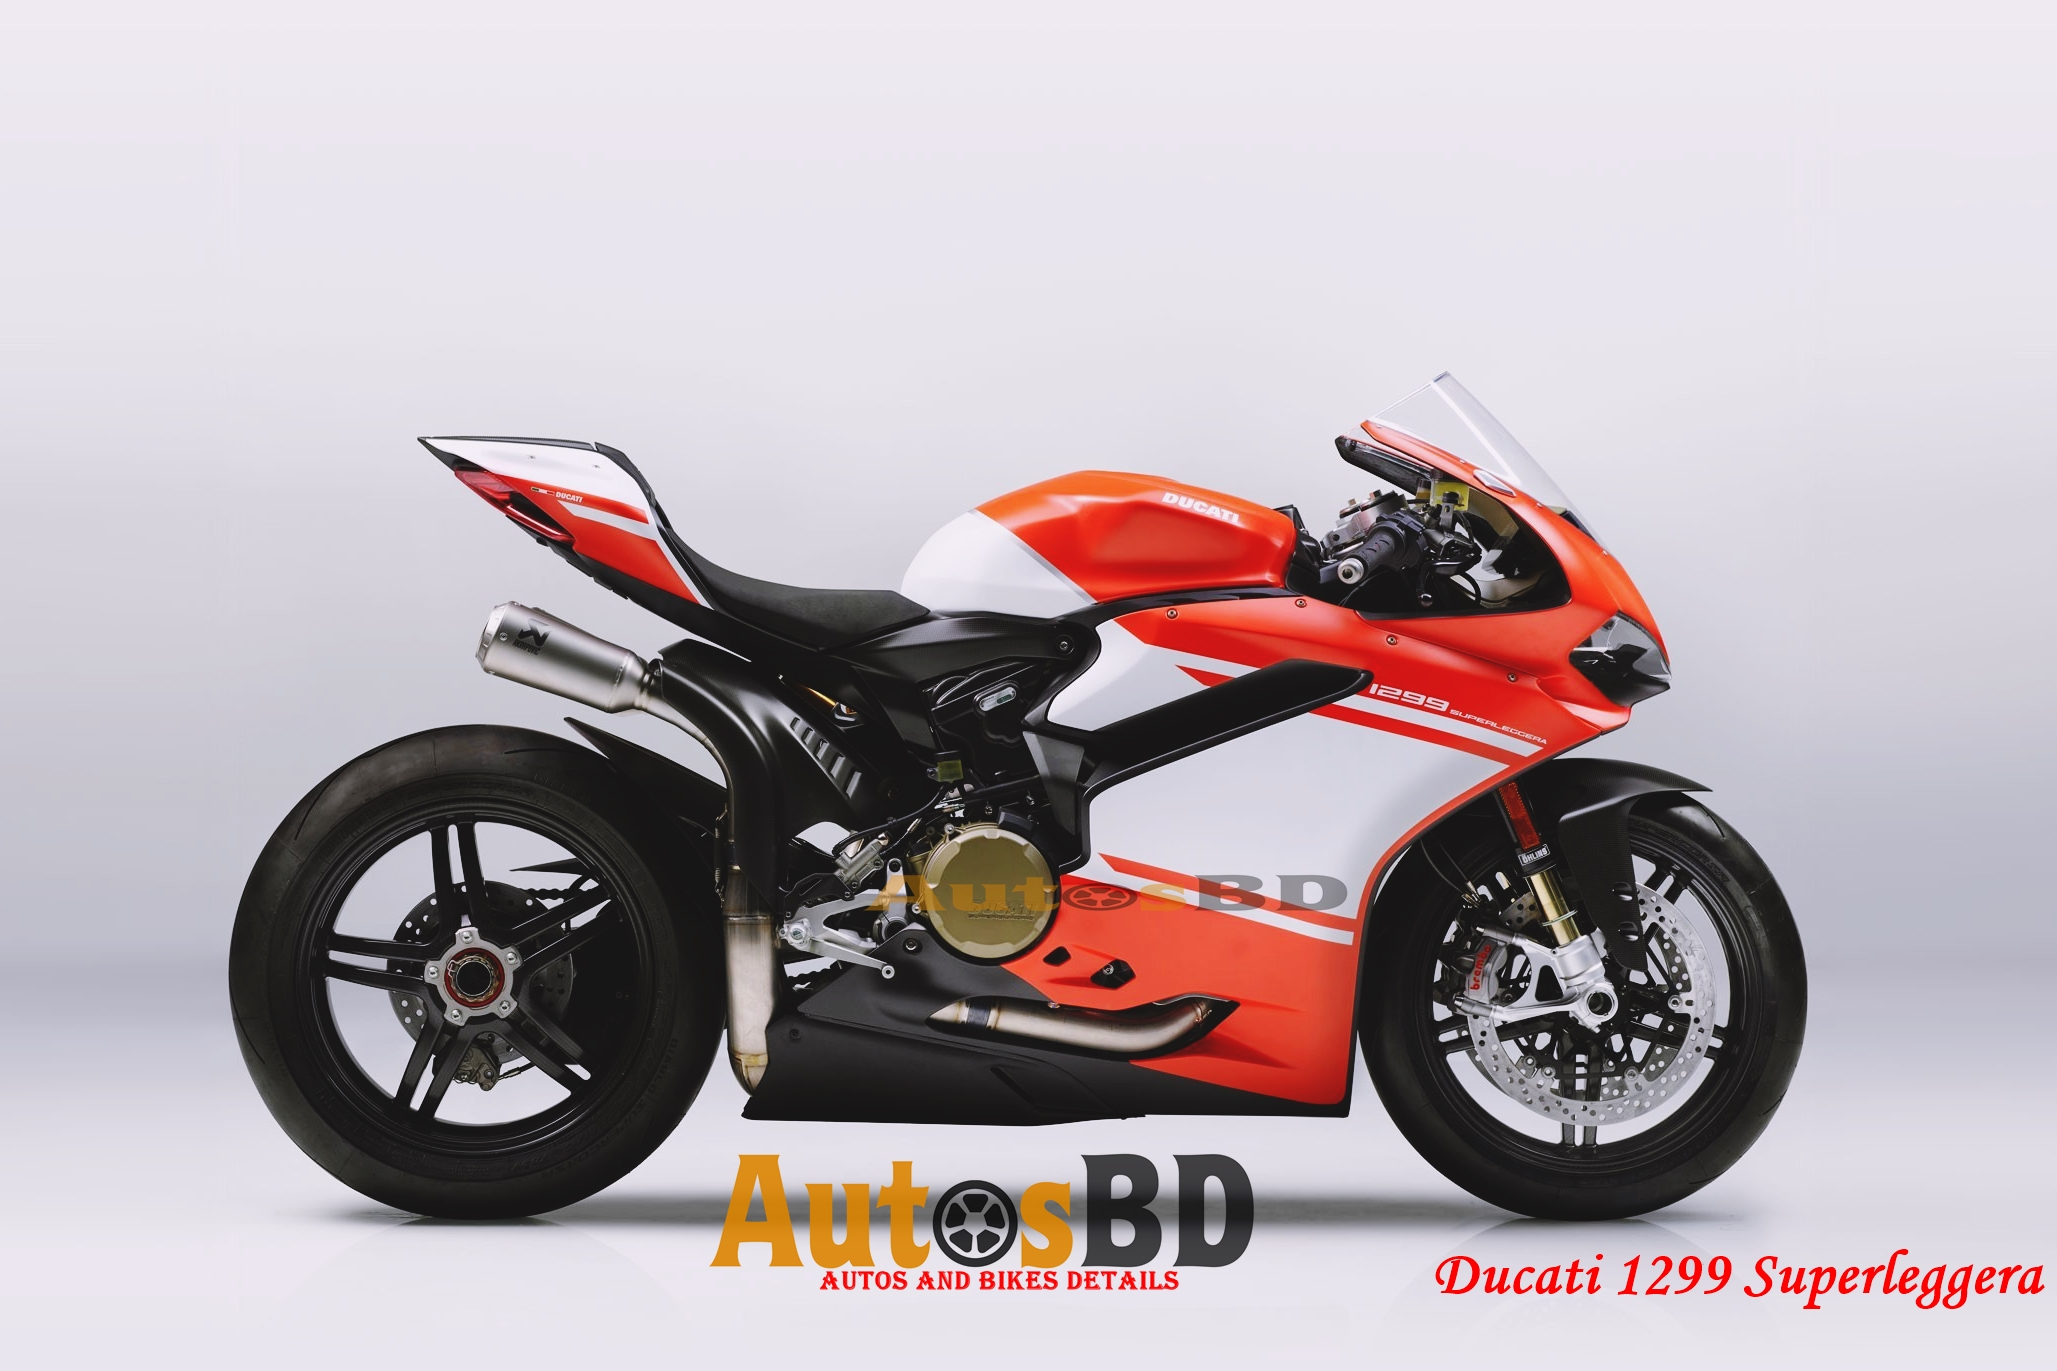 Ducati 1299 Superleggera Motorcycle Specification